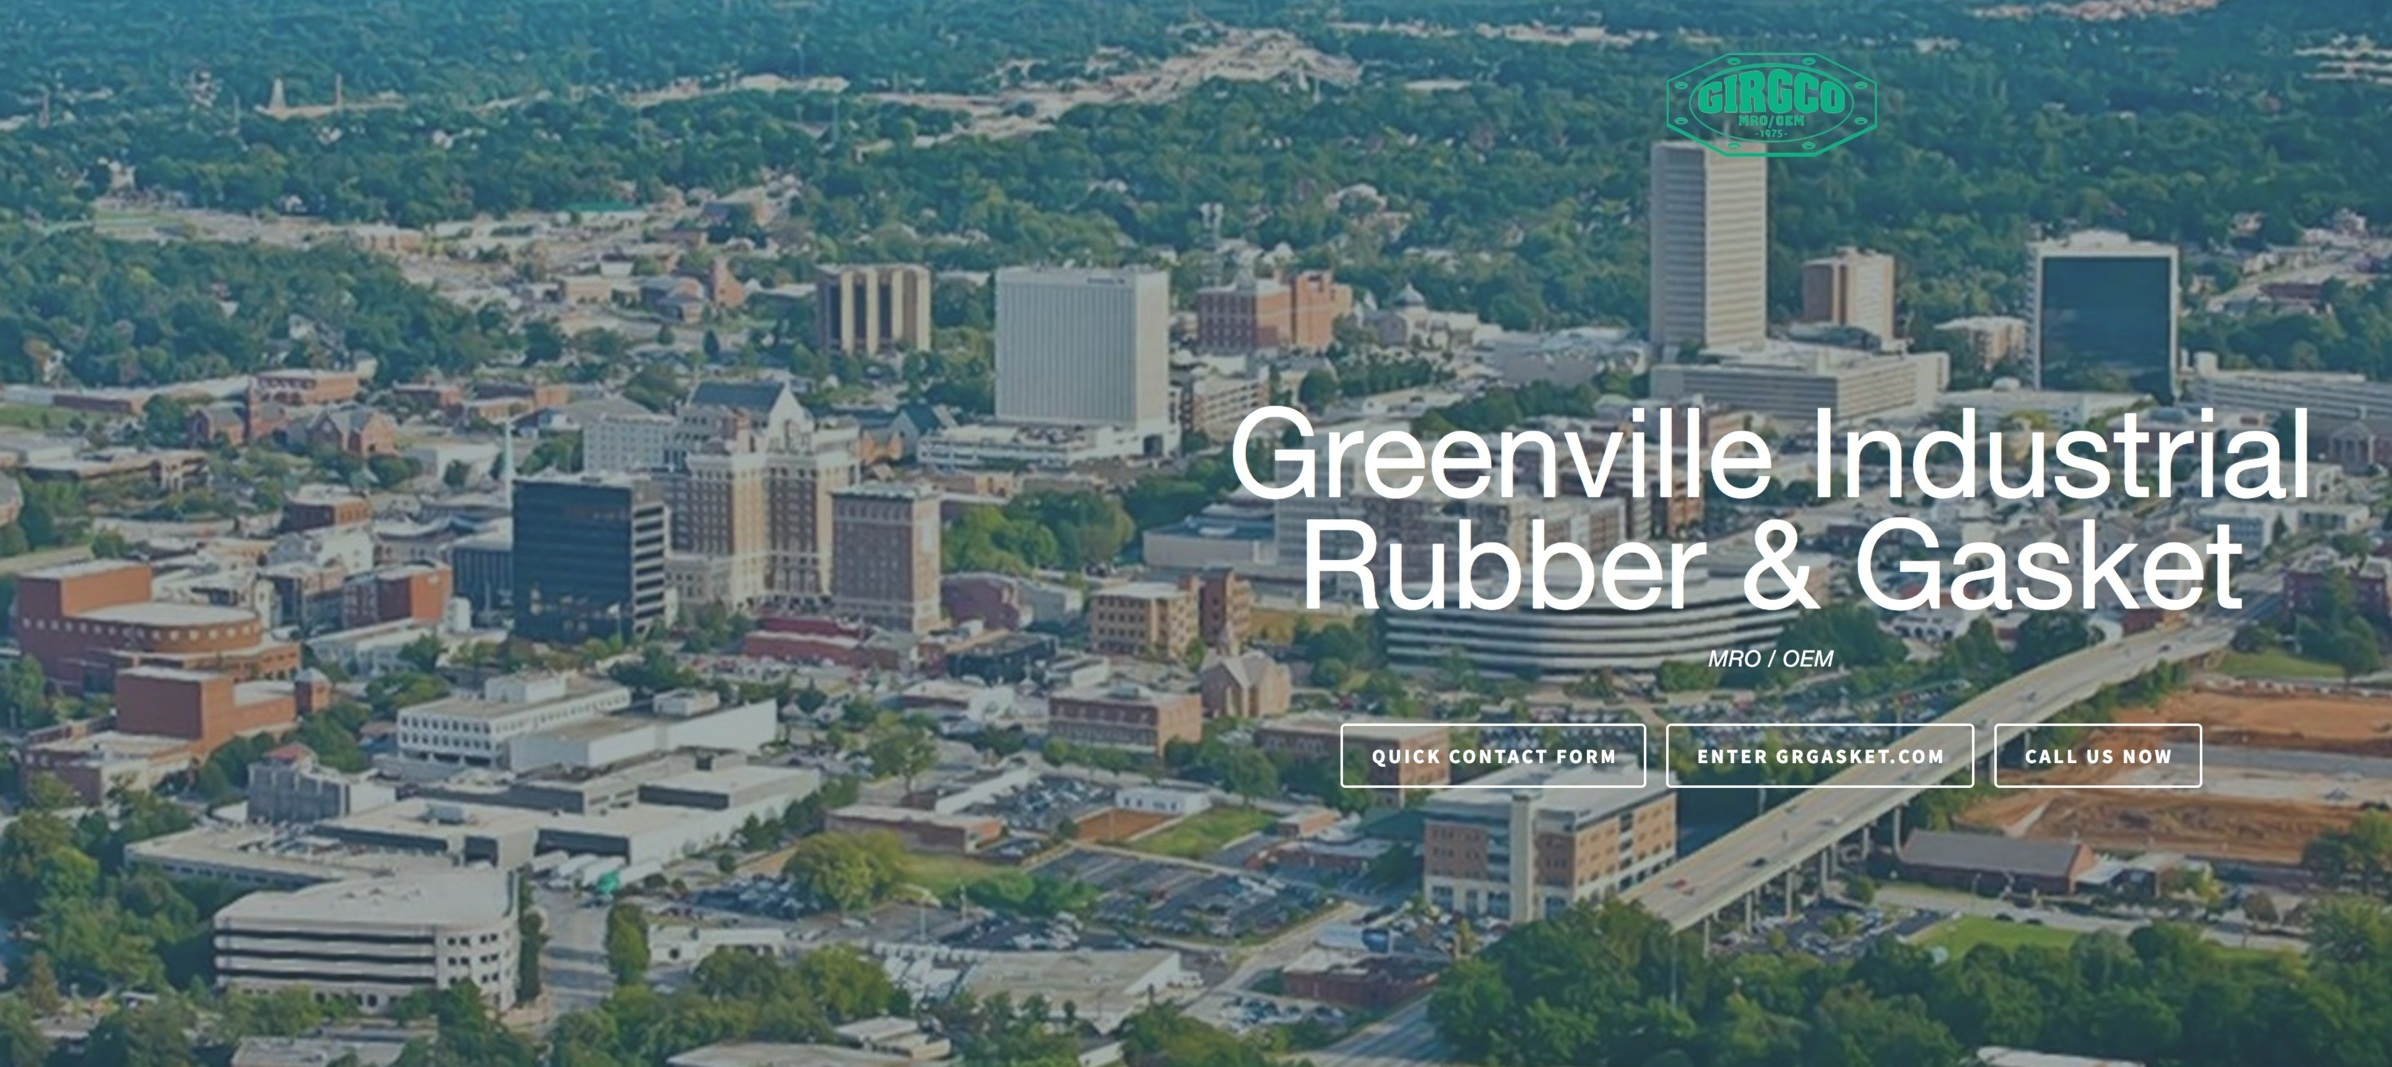 Greenville Industrial Rubber